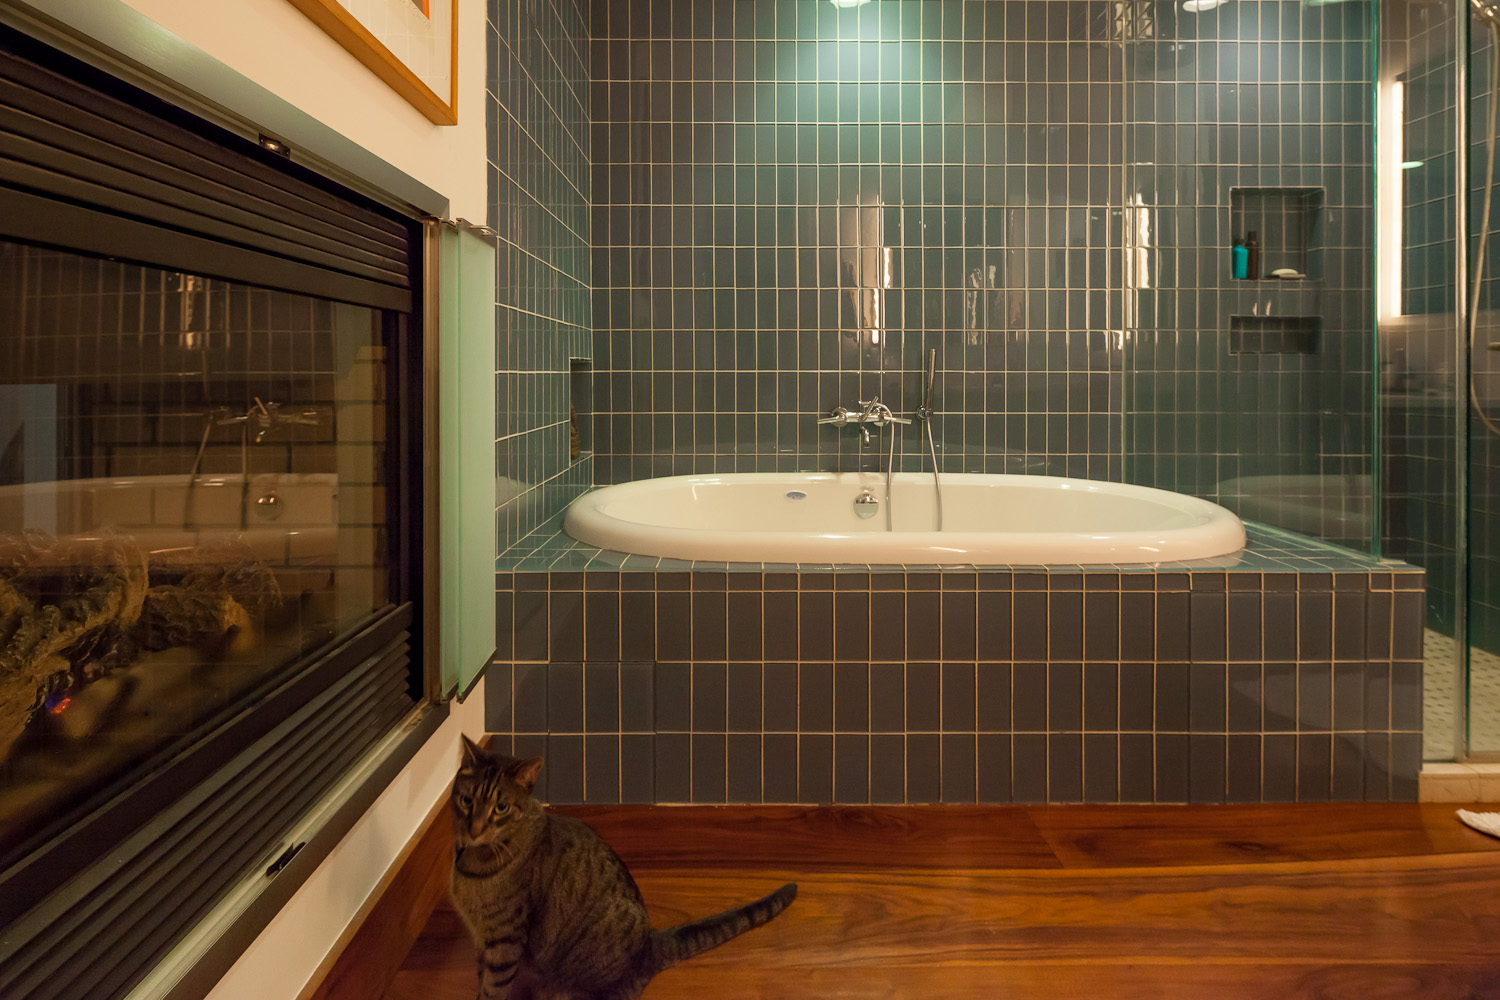 20120917-0006_315 West 36th